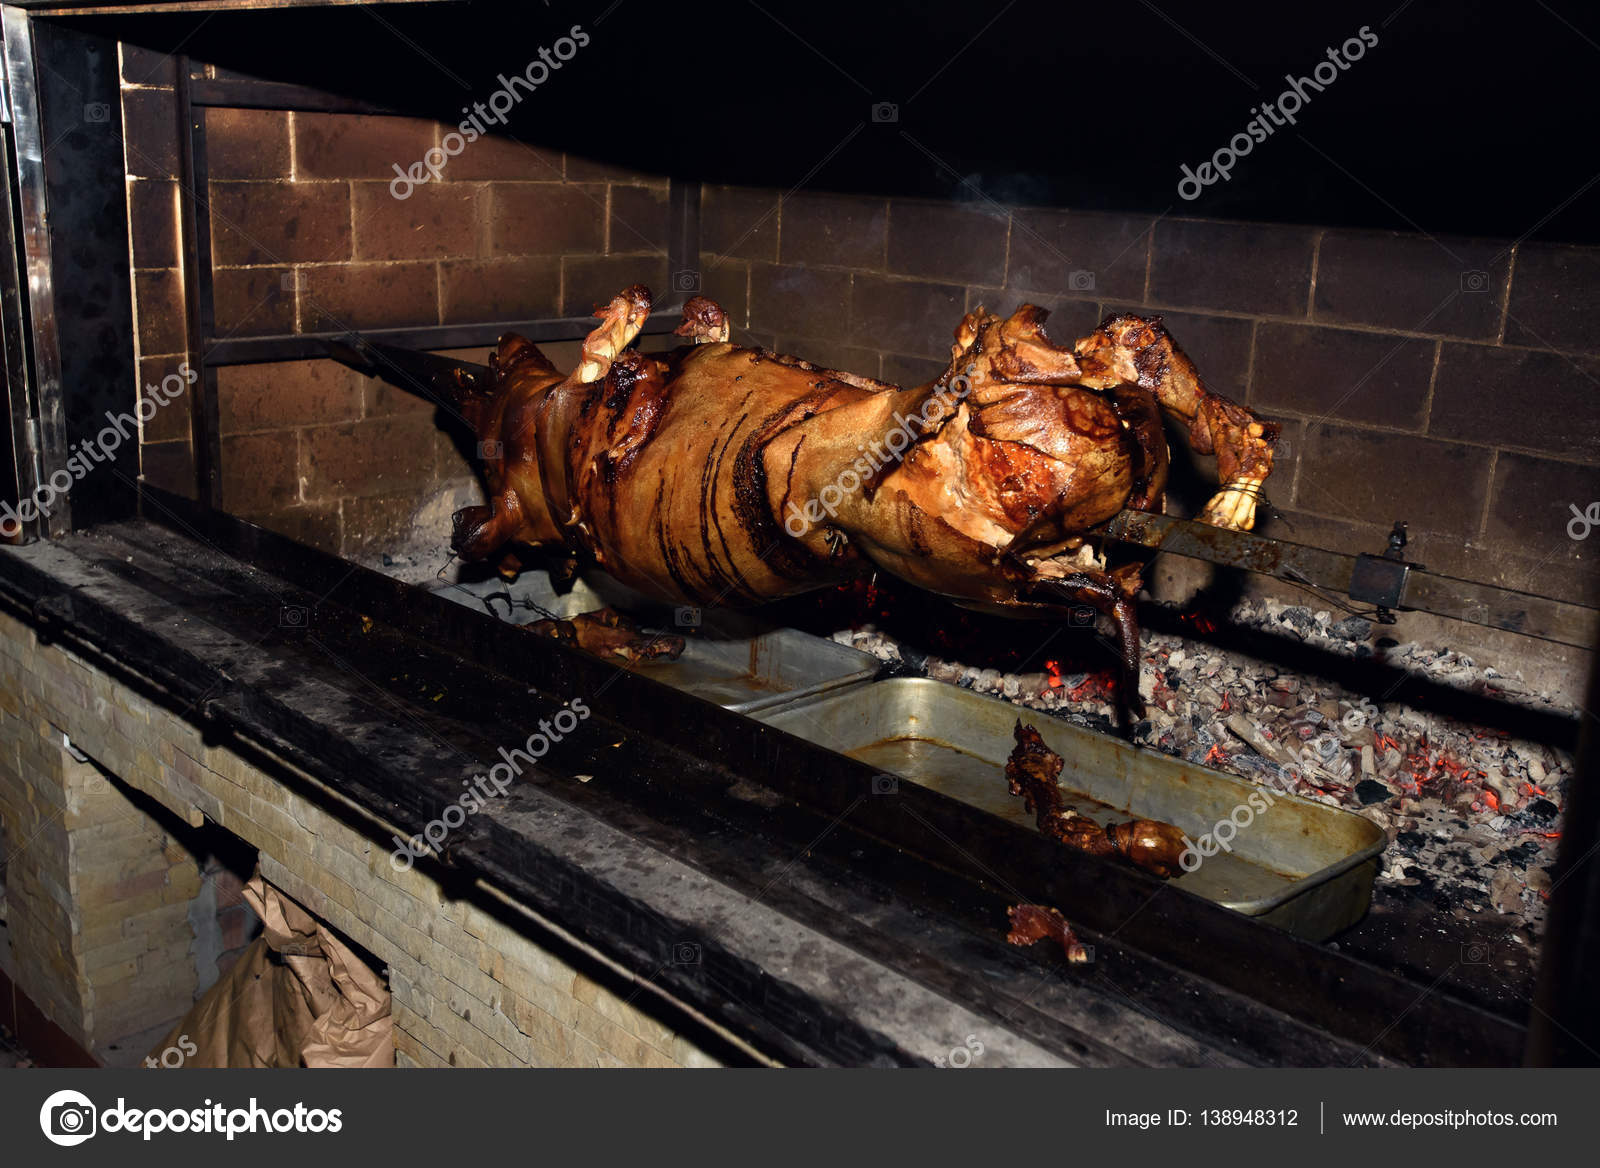 Delicious Roasted Pig On Fire Stock Photo Sonyachny 138948312